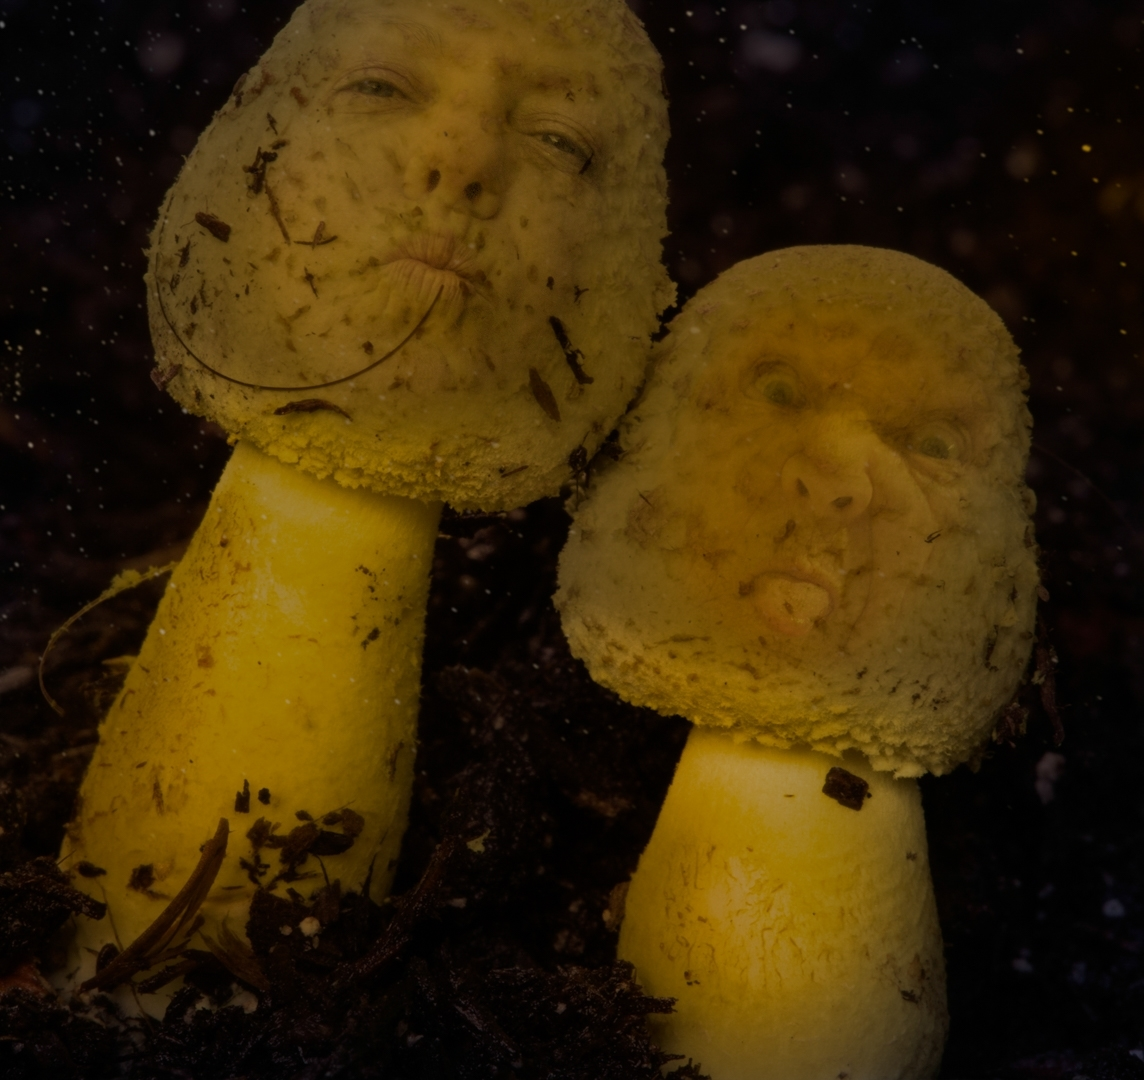 Shrooms-with-Attitude-CI-1-Place-by-Tracy-Lussier-CC